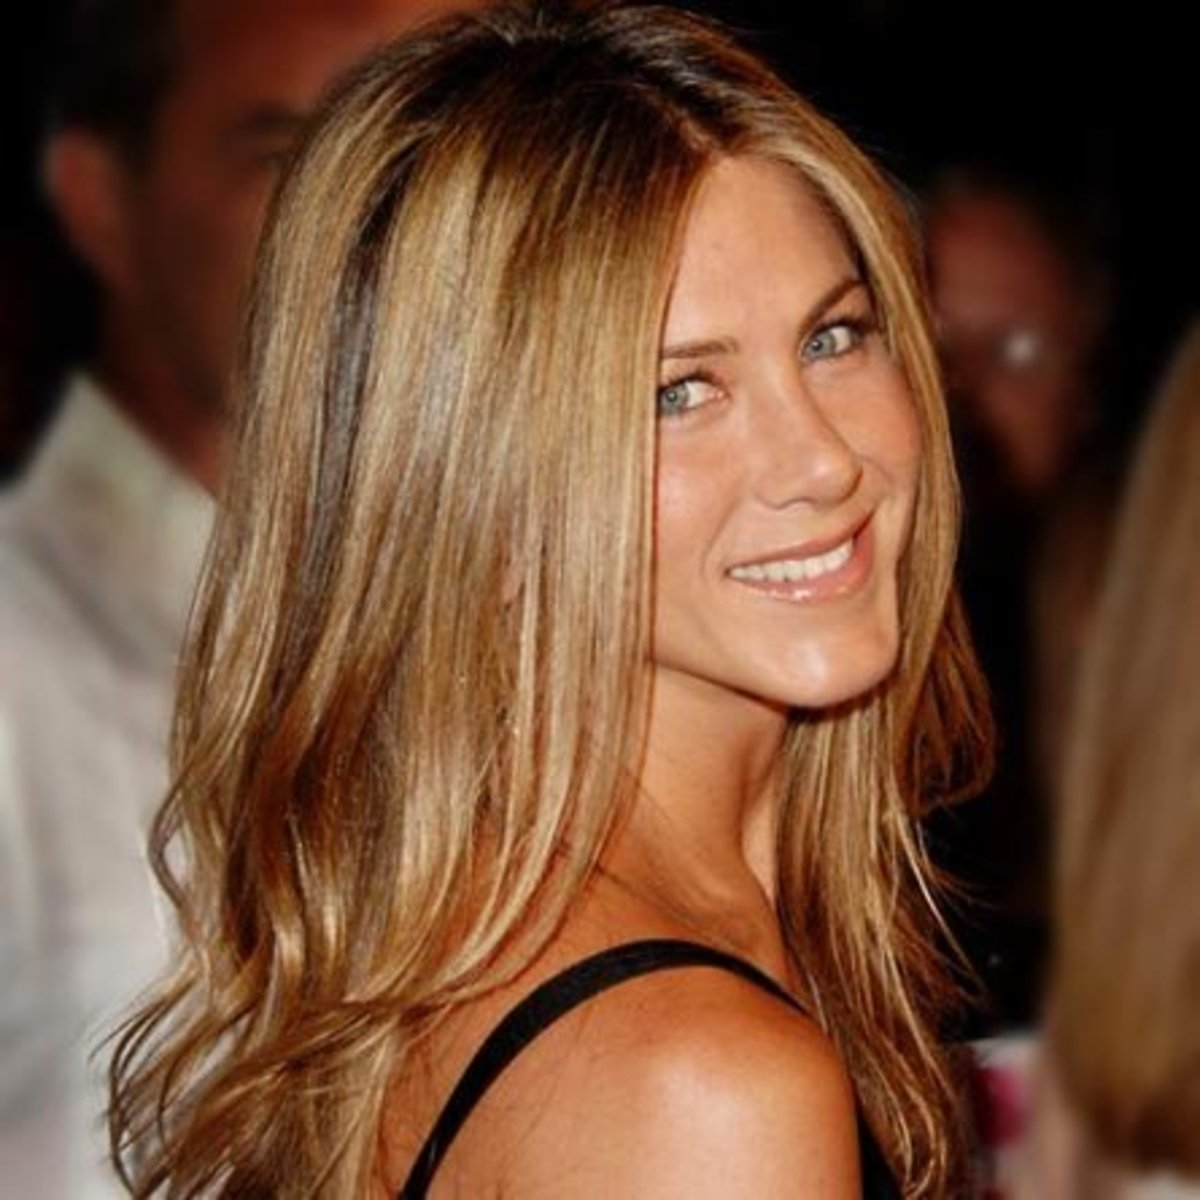 Jennifer Aniston should know better than to wear her hair long like this at 42.